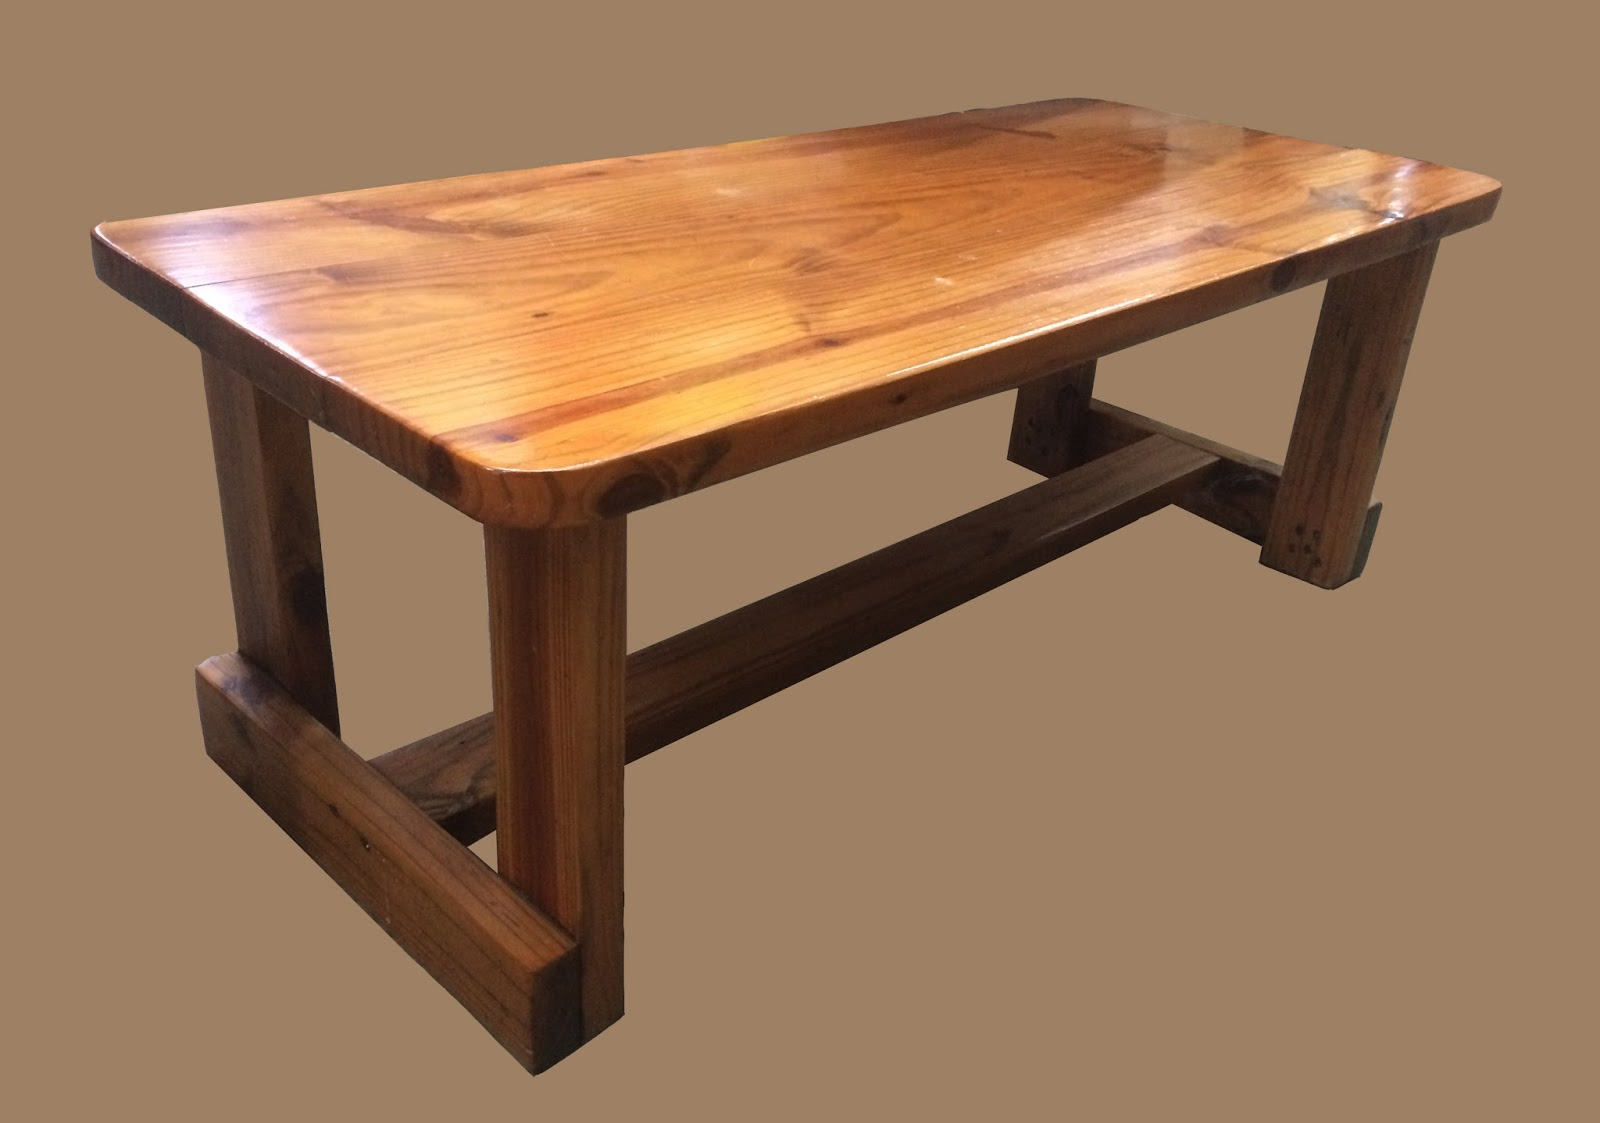 uhuru furniture collectibles 3 piece living room table